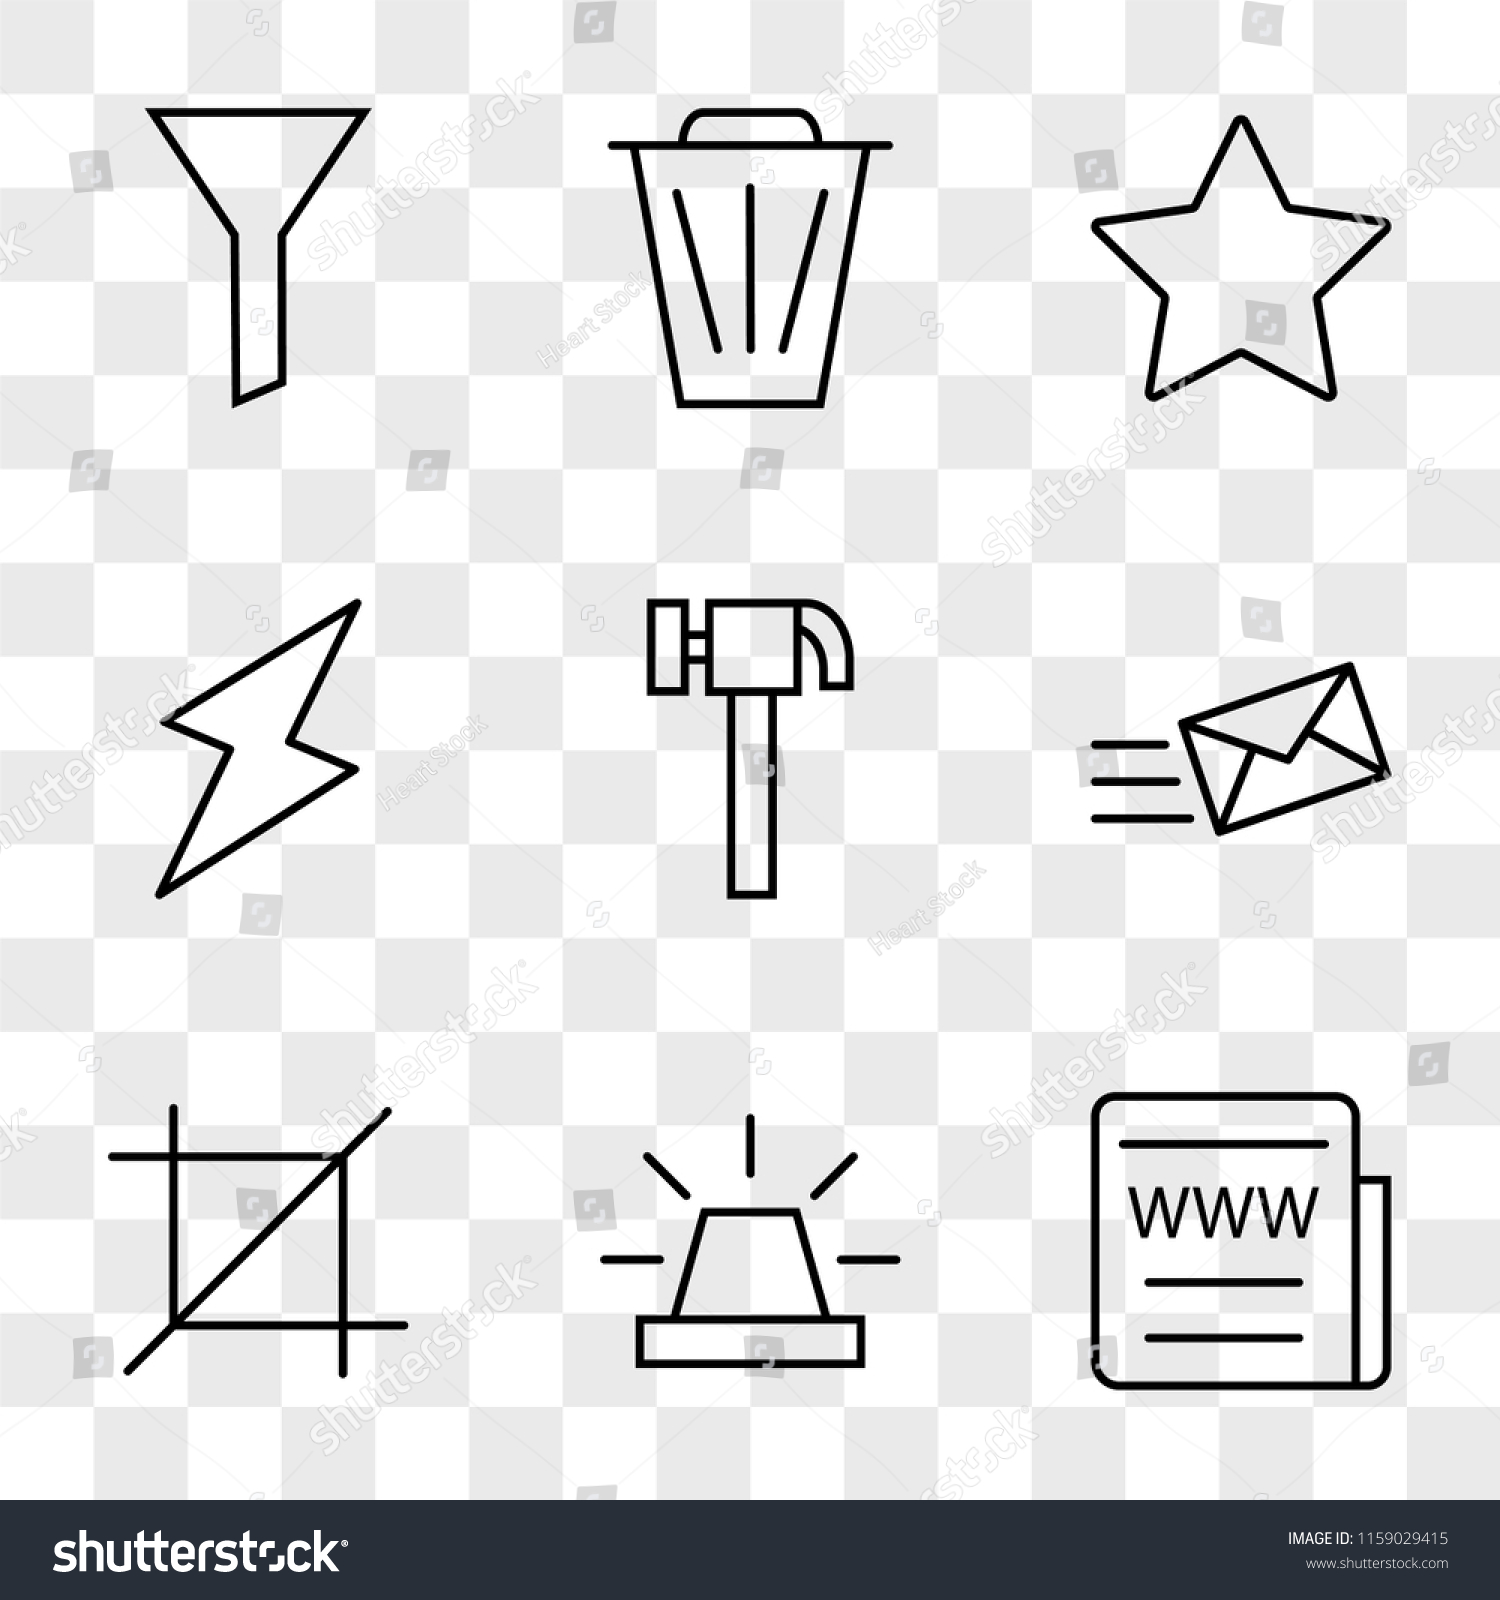 9 Simple Transparent Vector Icon Pack Stock Royalty Free Battery Cell Diagram Editable Powerpoint Template Set Of Icons Such As Web News Alarm